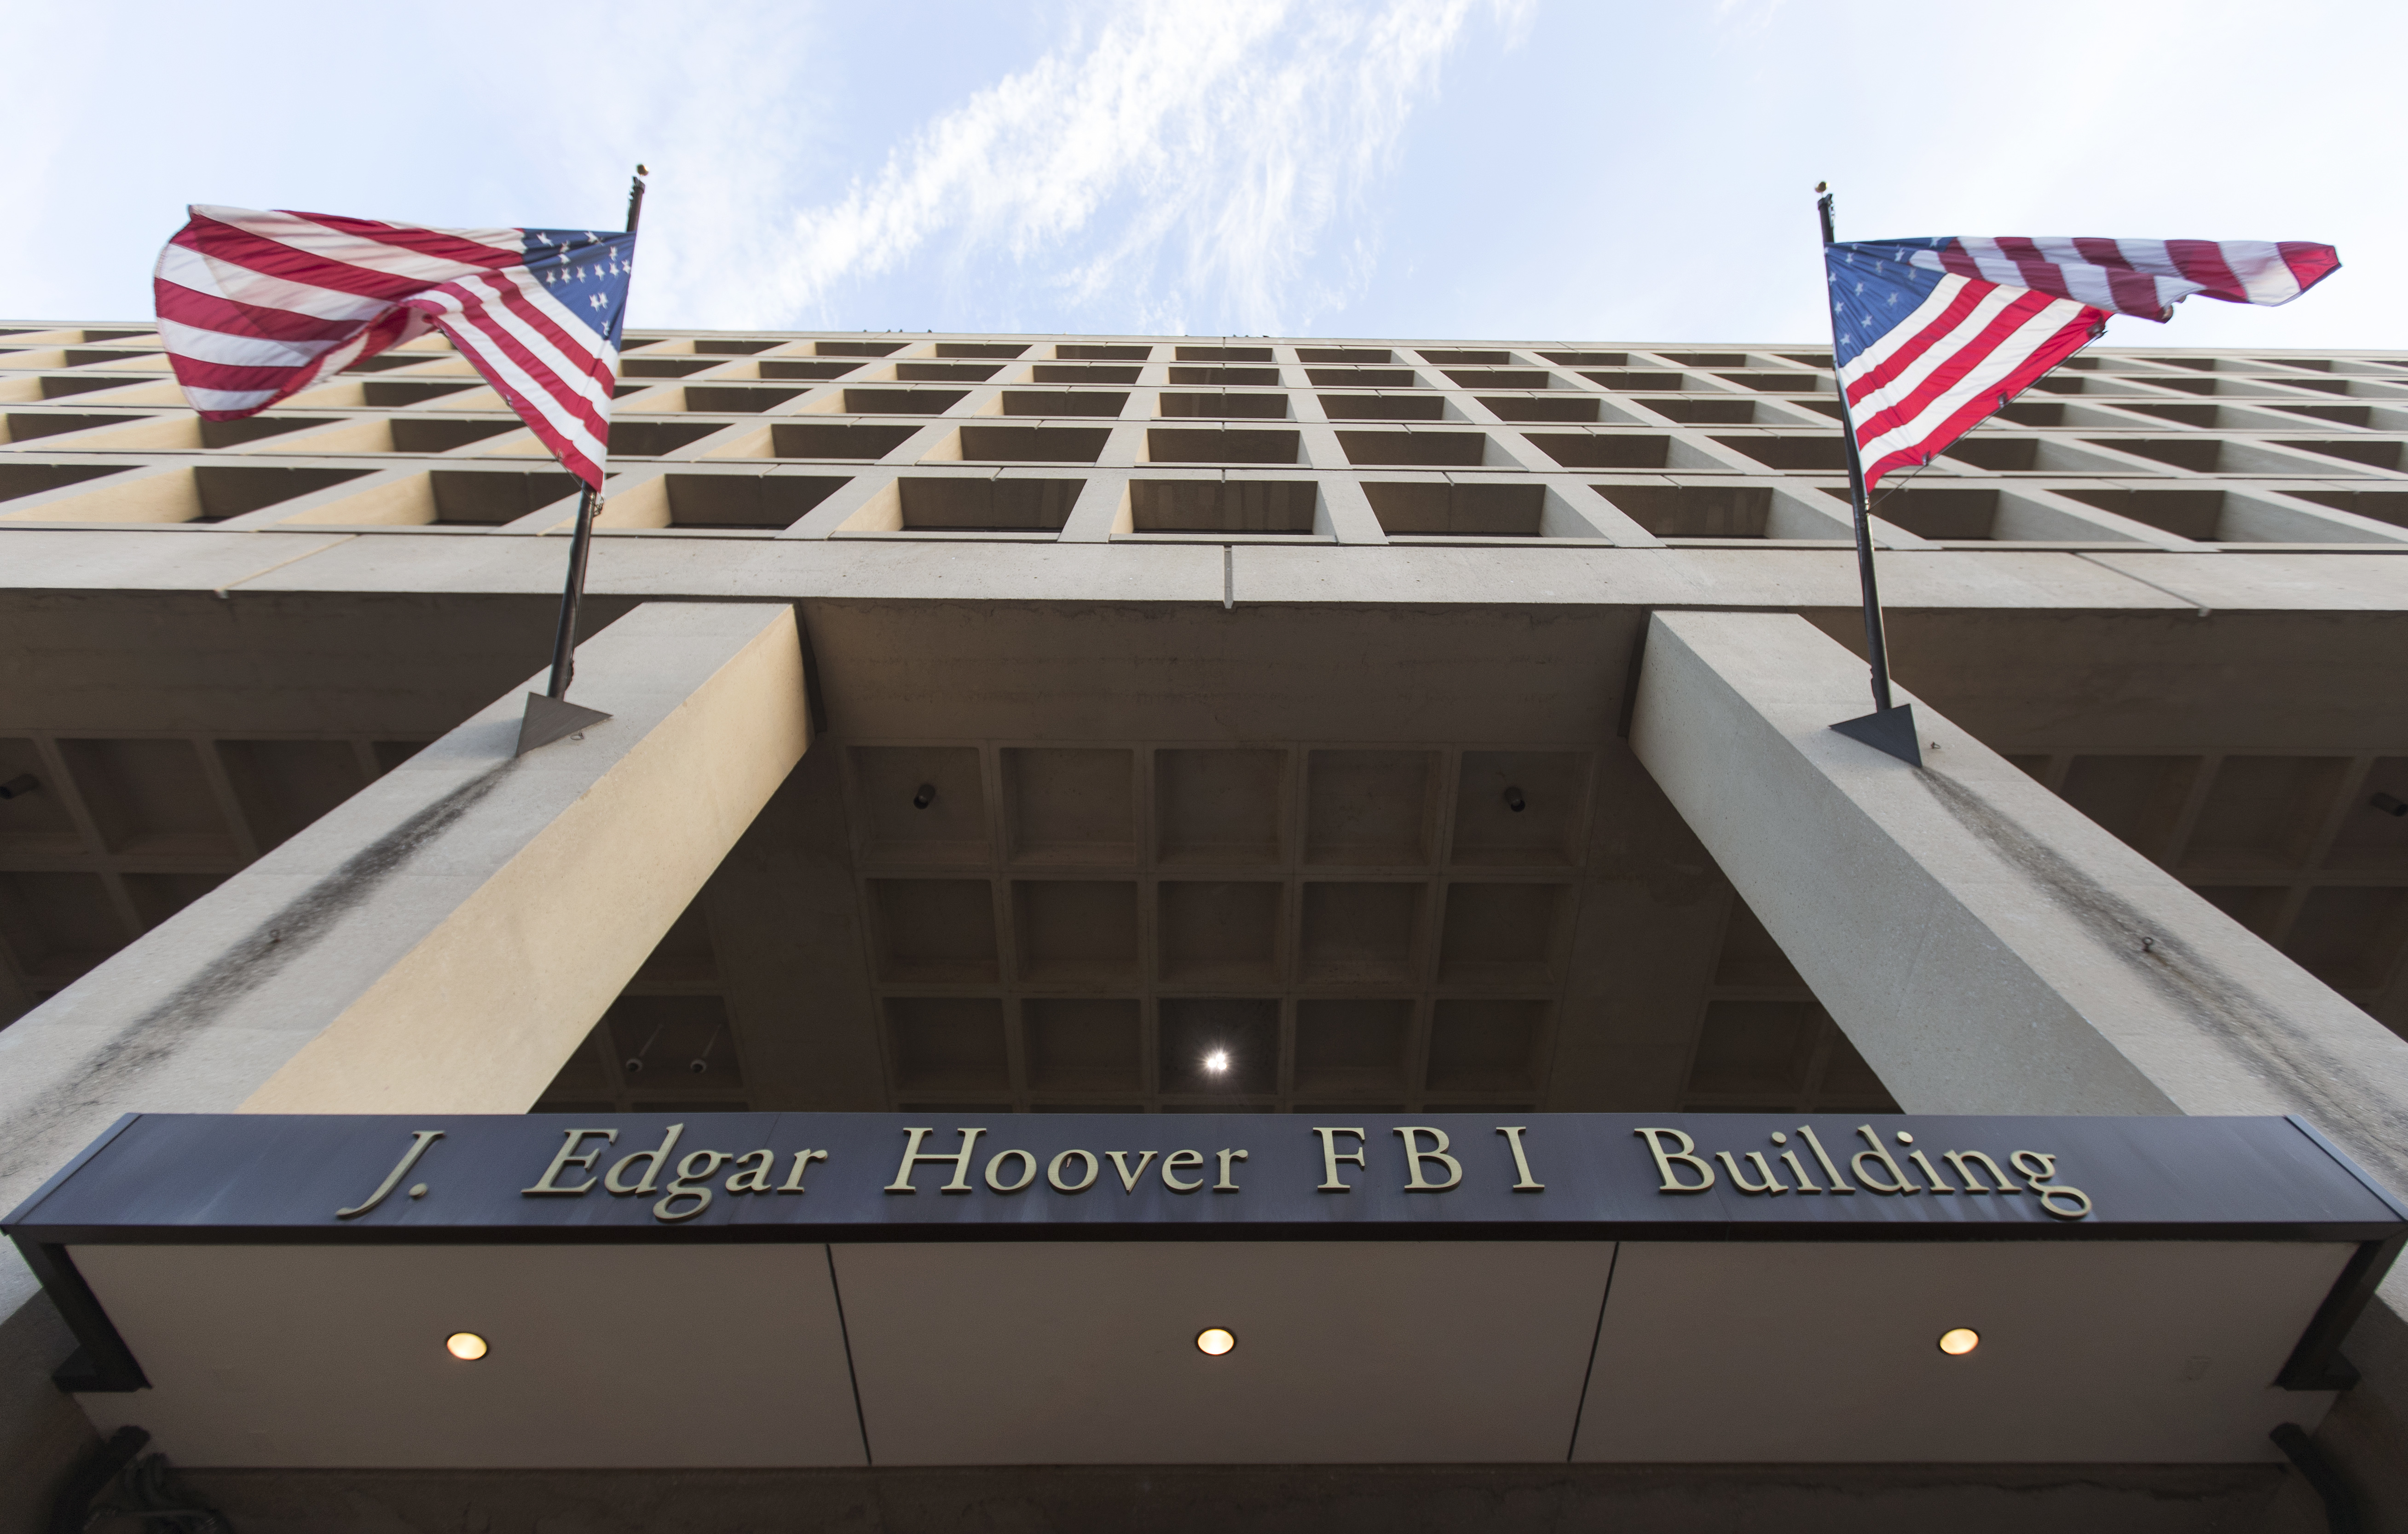 The Pennsylvania Avenue entrance of the J. Edgar Hoover Federal Bureau of Investigations (FBI) Building is seen in Washington, Nov. 30, 2017.